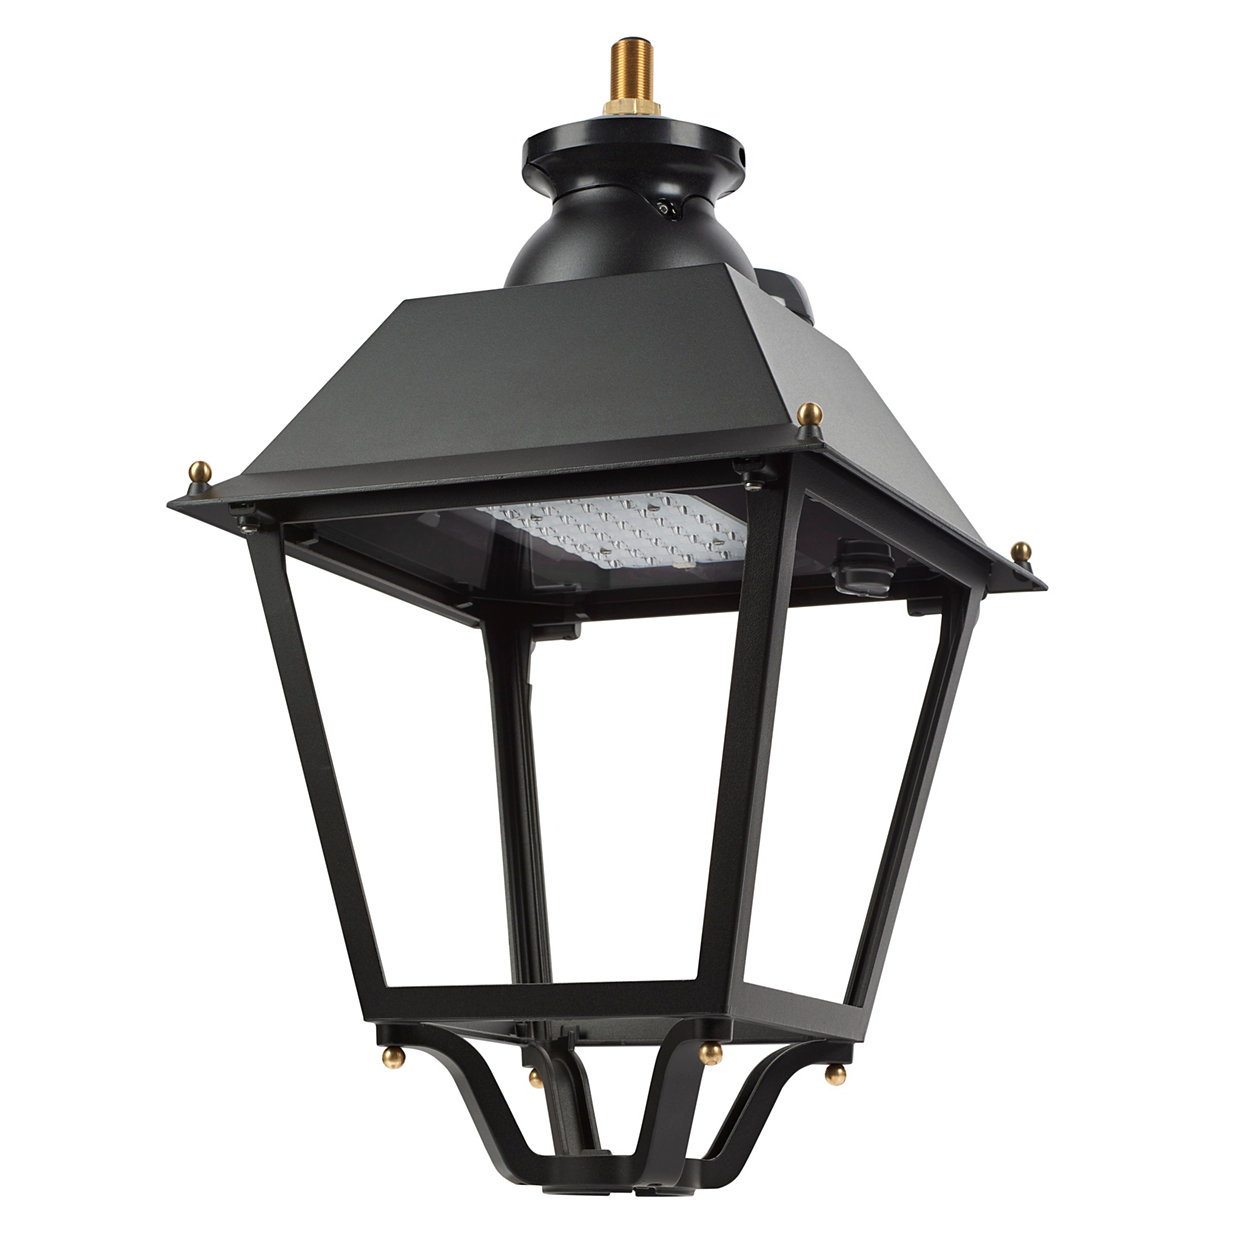 Jargeau LED gen3 –- combining historical design with modern lighting technology